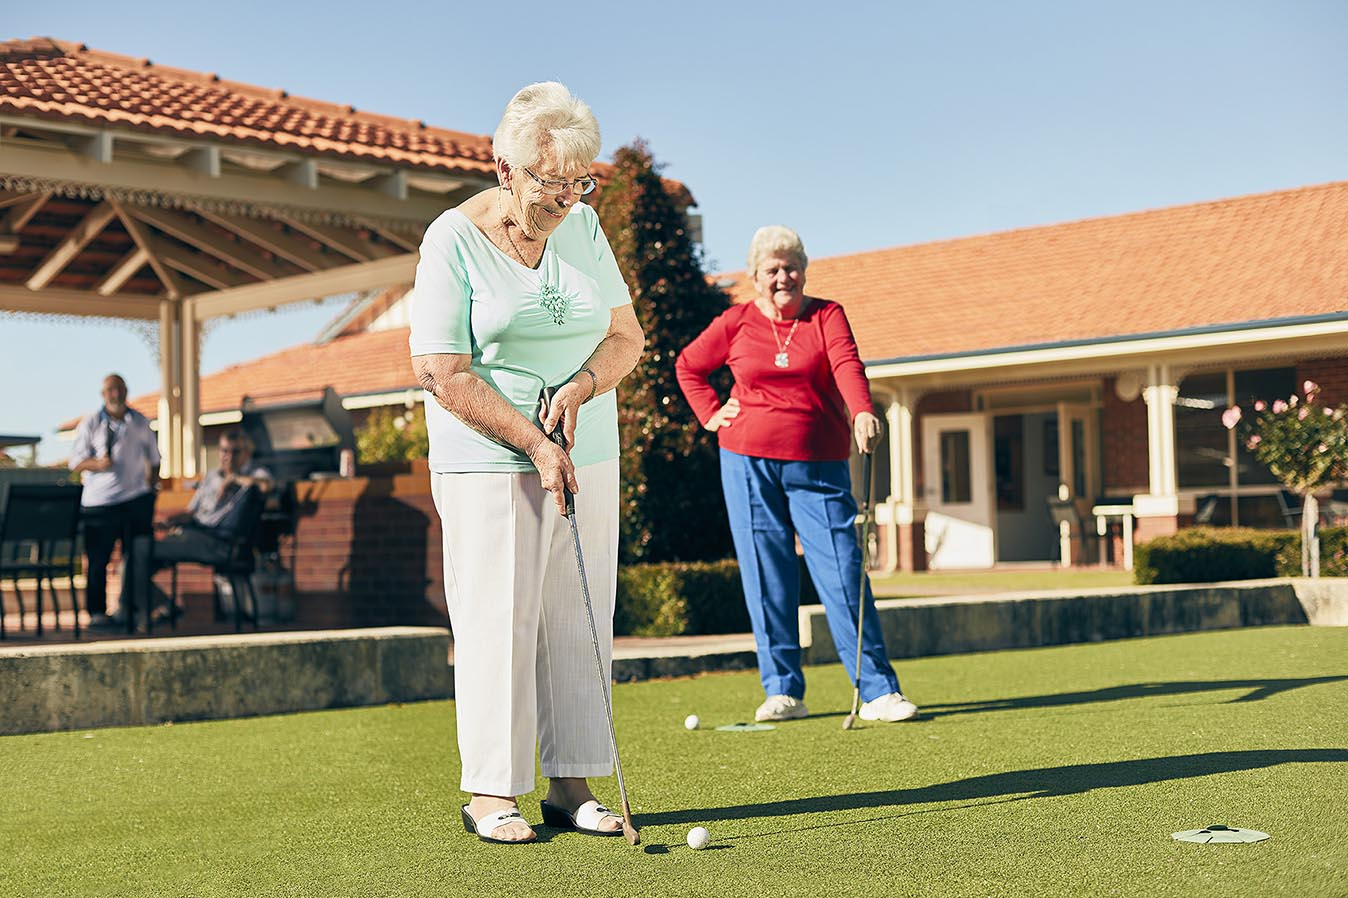 Retired woman enjoying putting a golf ball